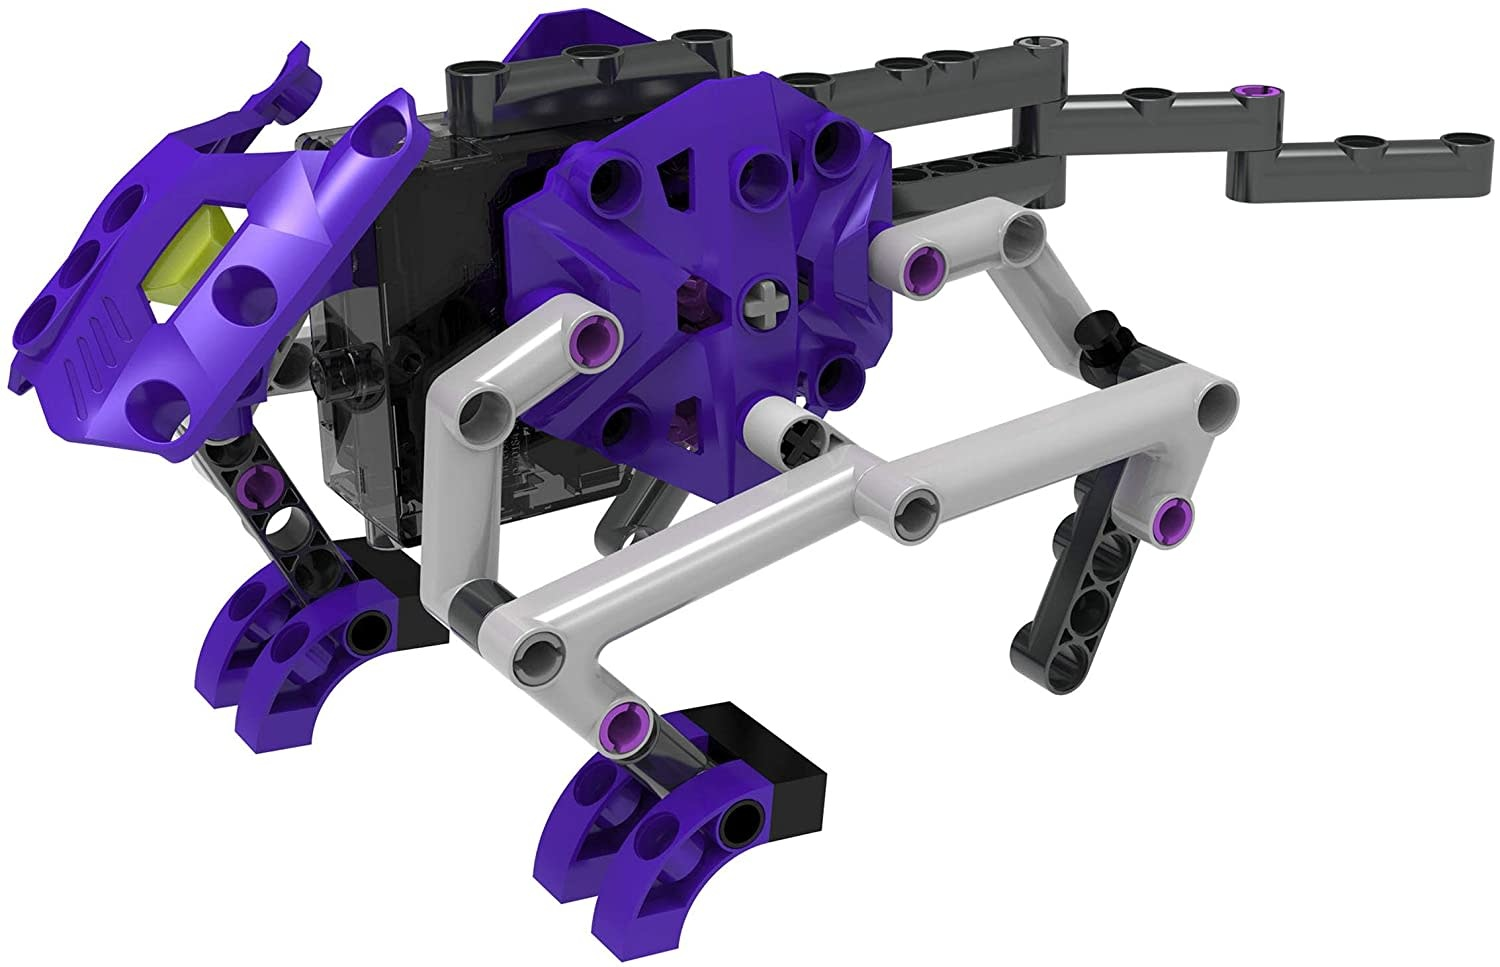 Makerspace Terrain Walker by Thames & Kosmos